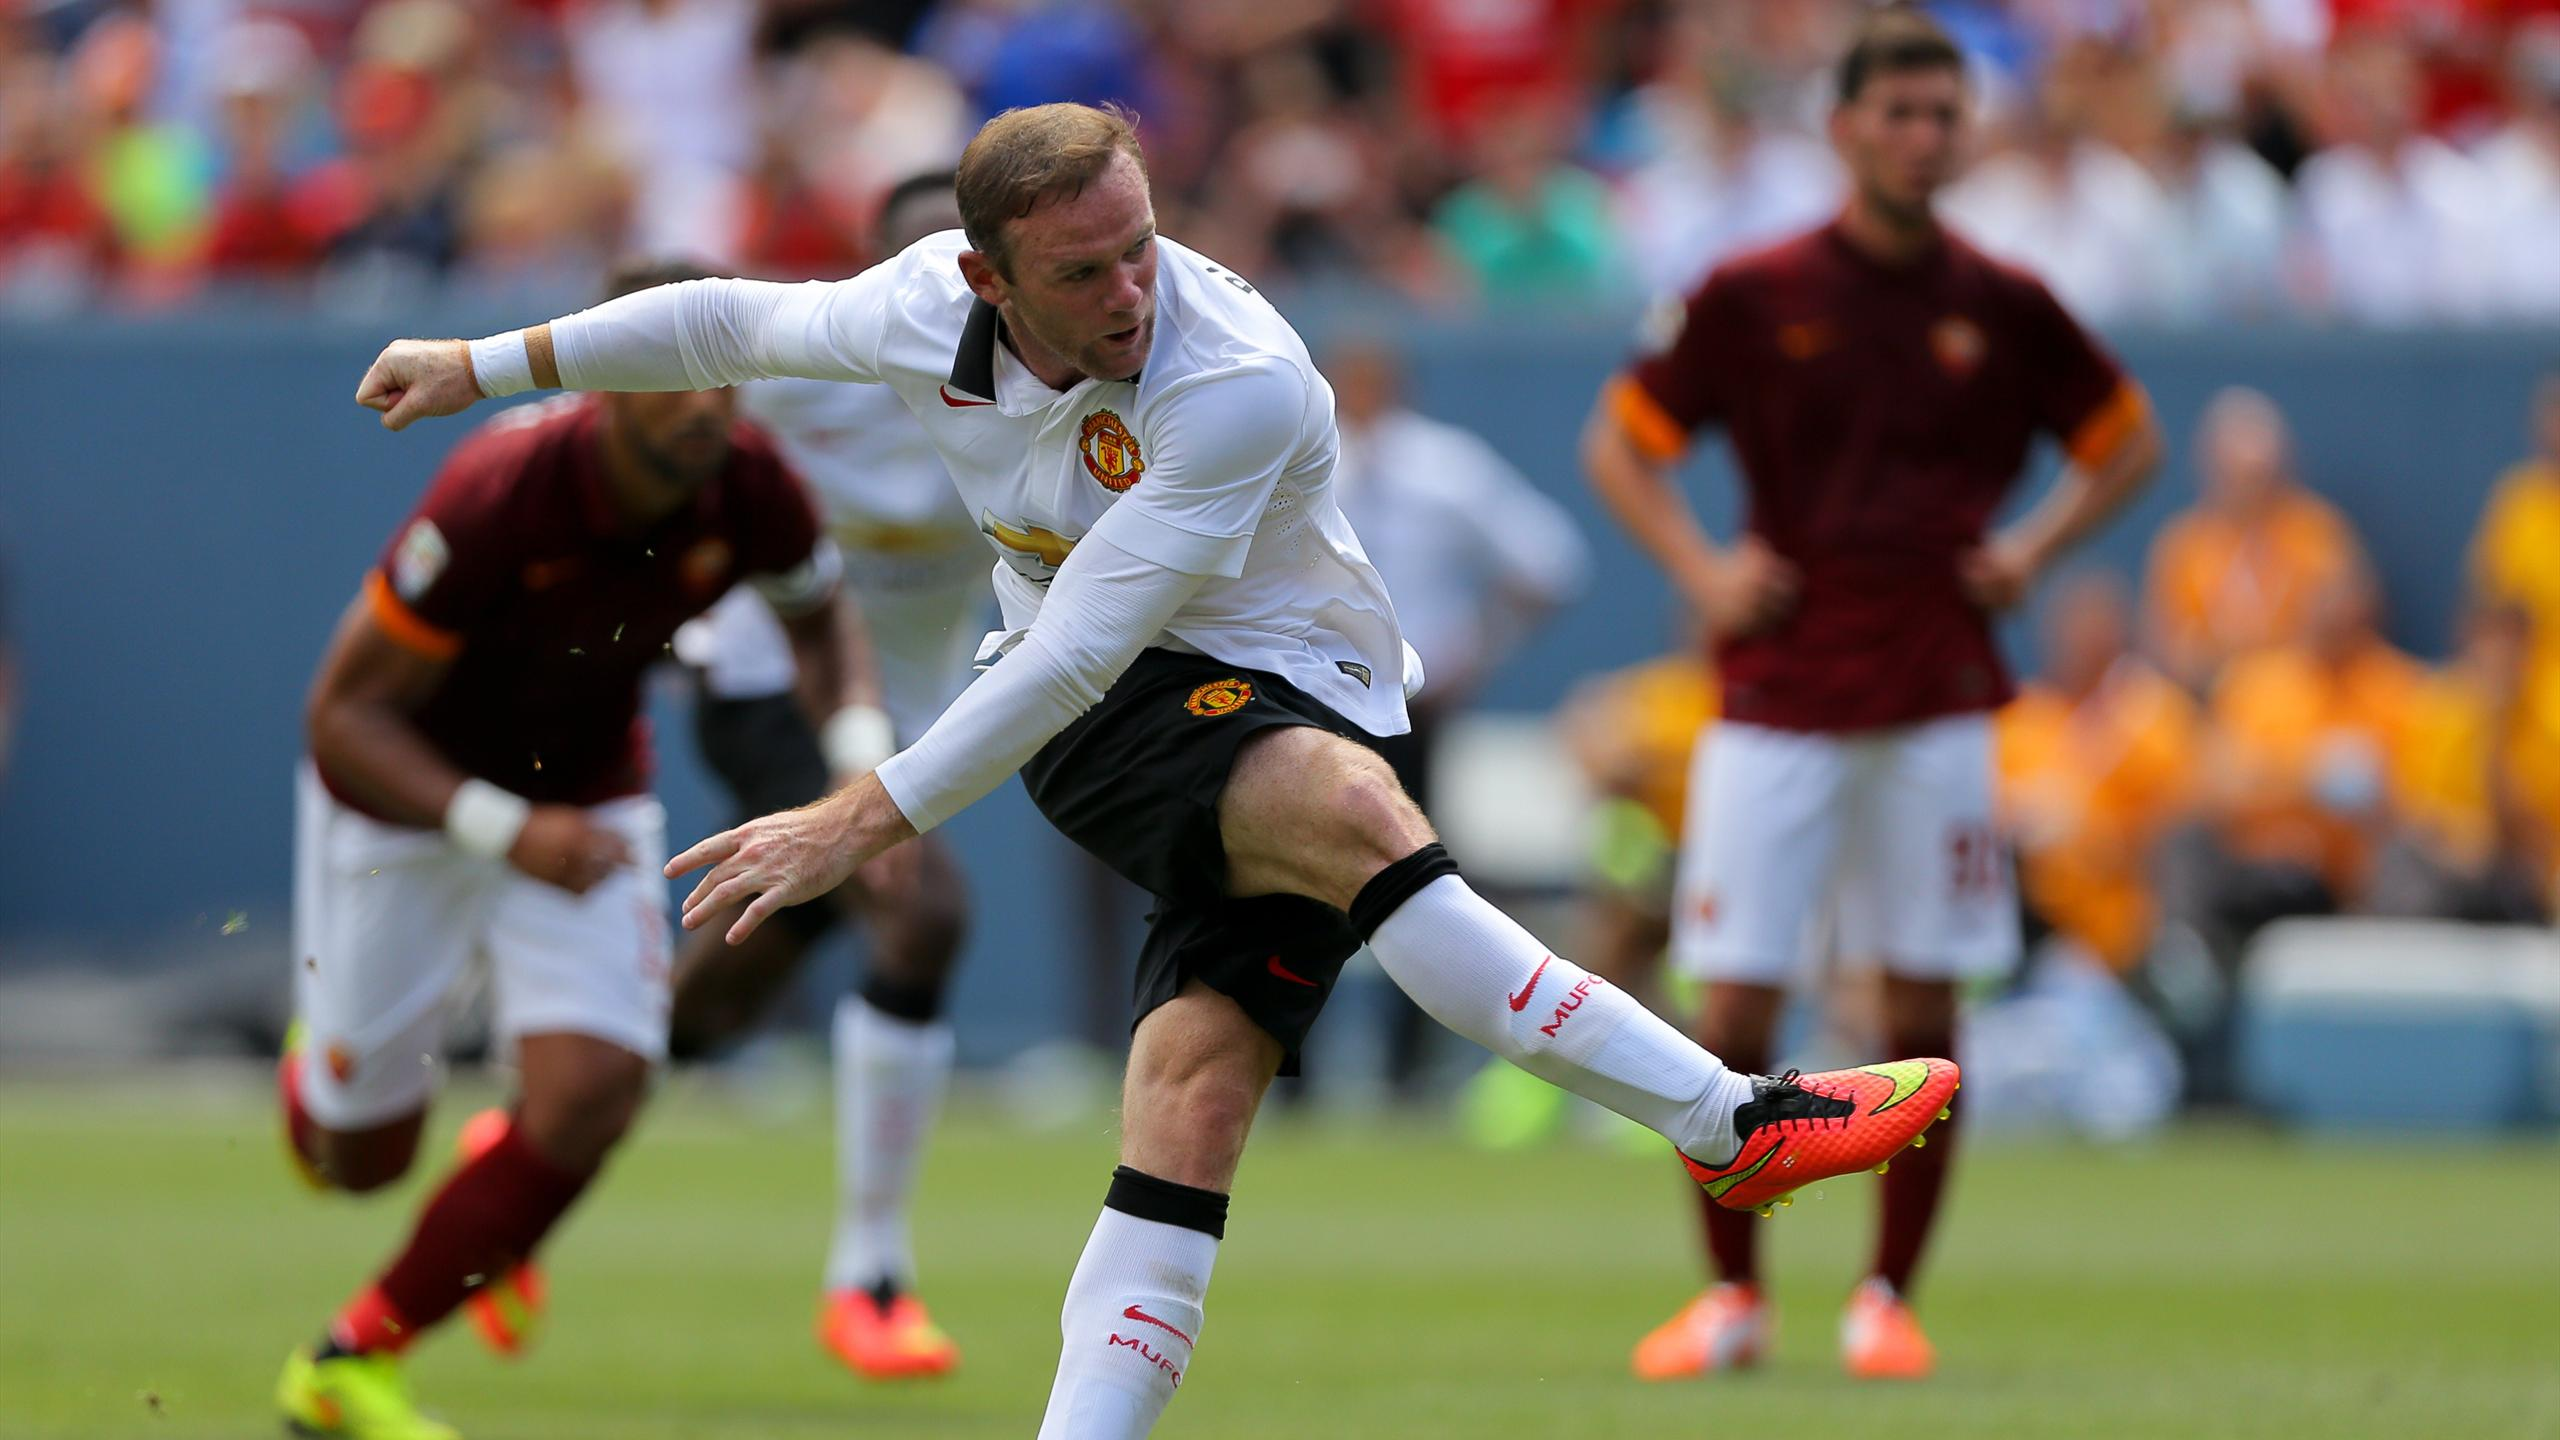 Friendly match - Rooney inspires Man Utd win over Roma